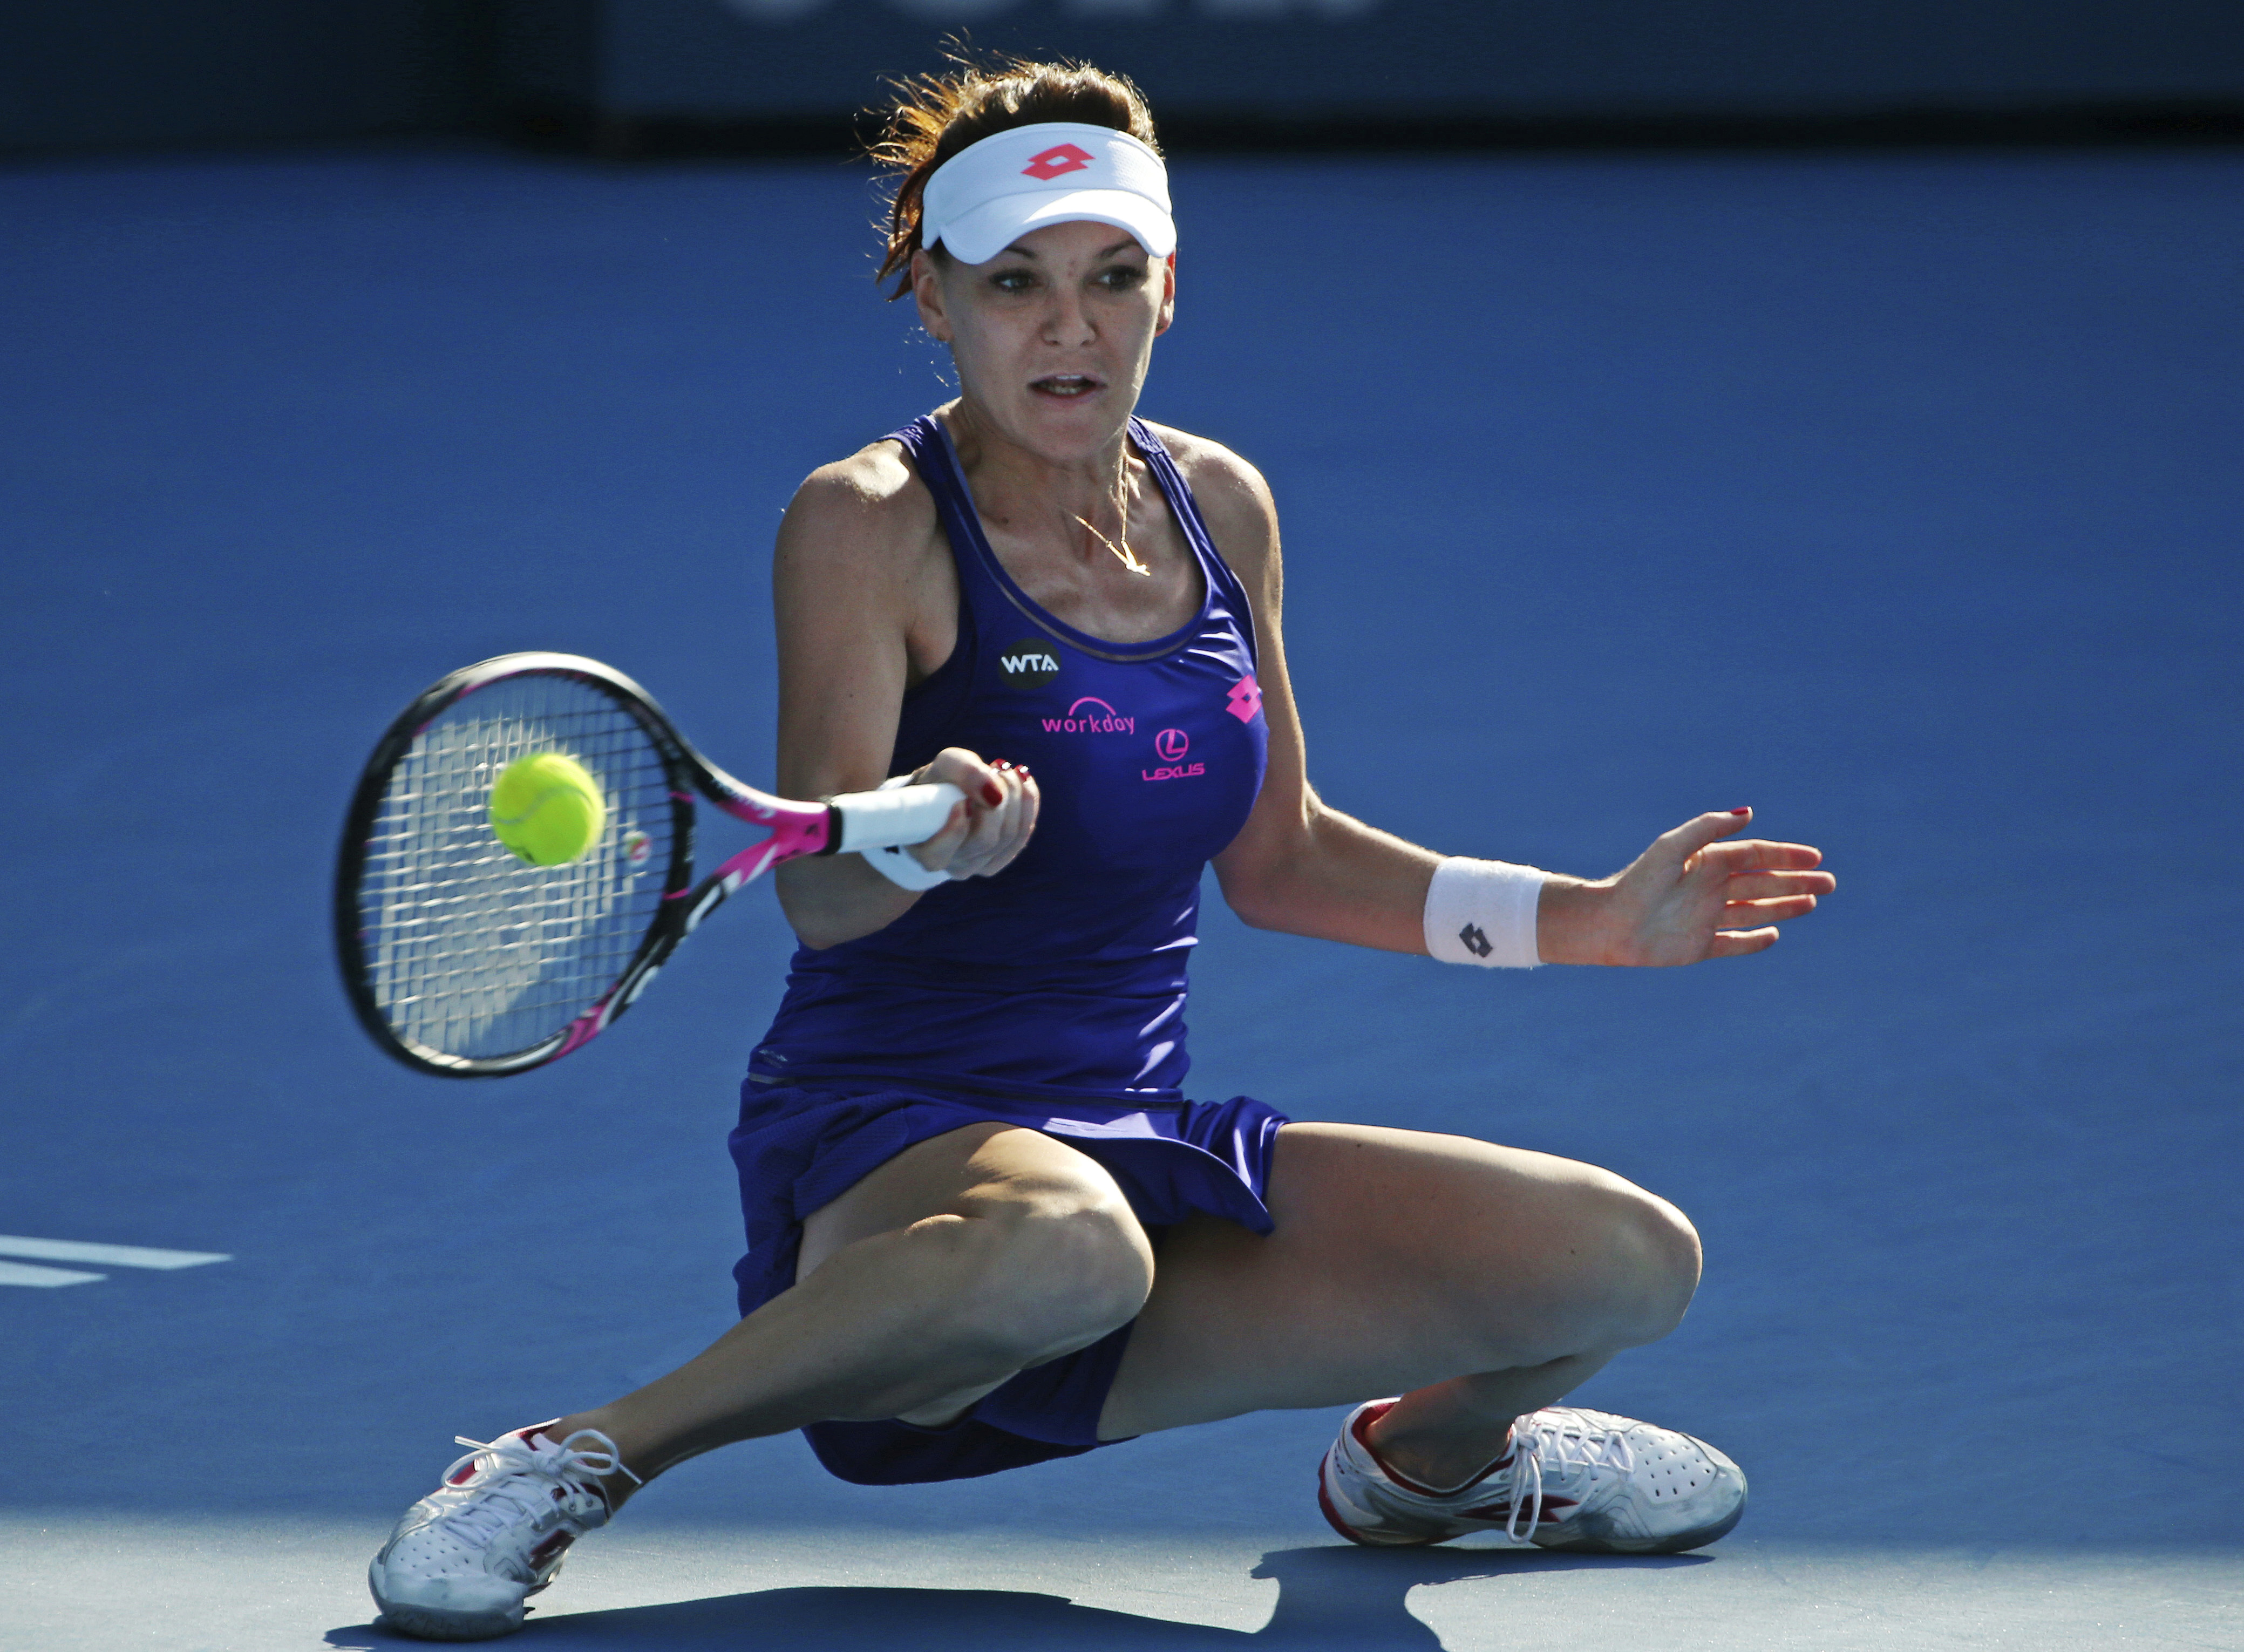 Agnieszka Radwanska of Poland plays a shot to Barbora Strycova of Czech Republic during their women's semifinal singles match at the Sydney International tennis tournament in Sydney Thursday, Jan. 12, 2017. (AP Photo/Rick Rycroft)